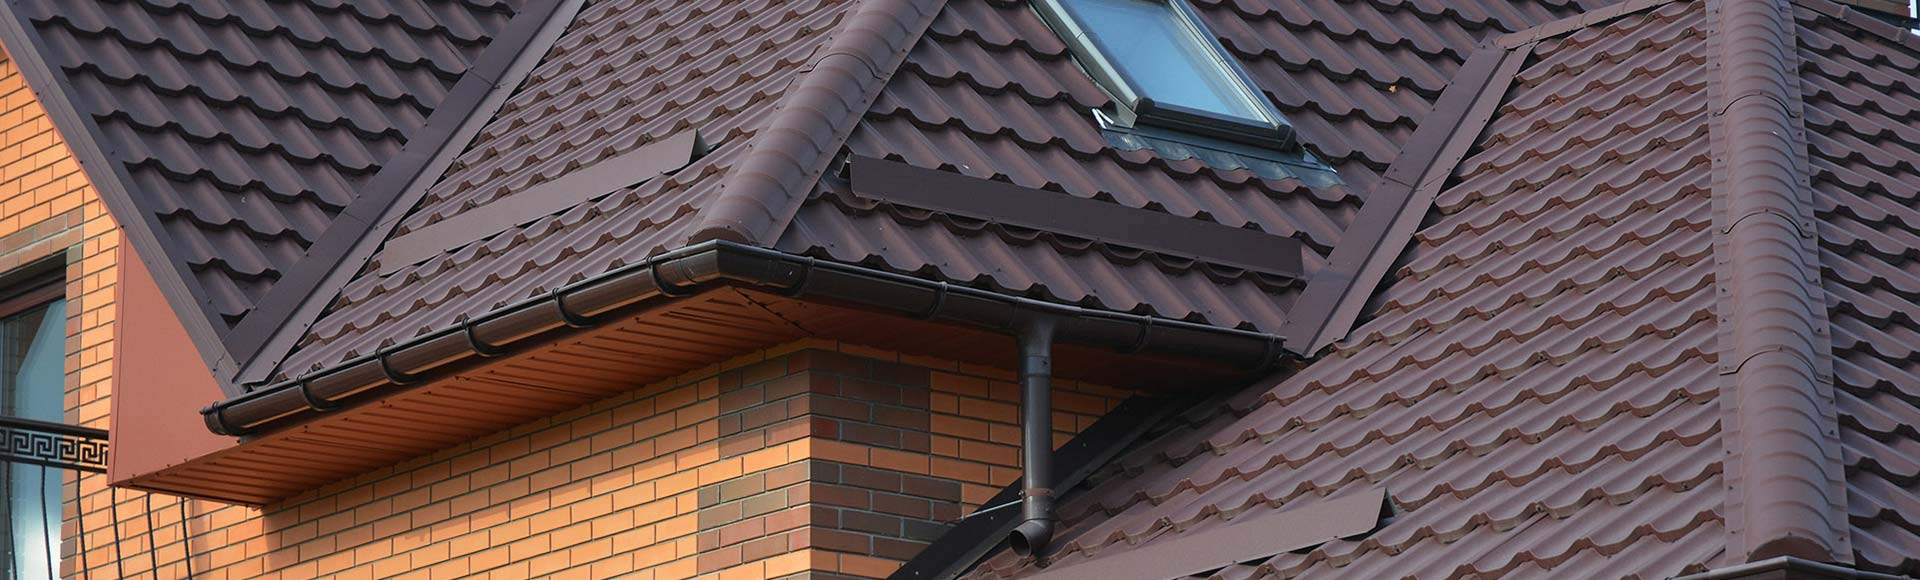 %Roof and Gutter Maintenance